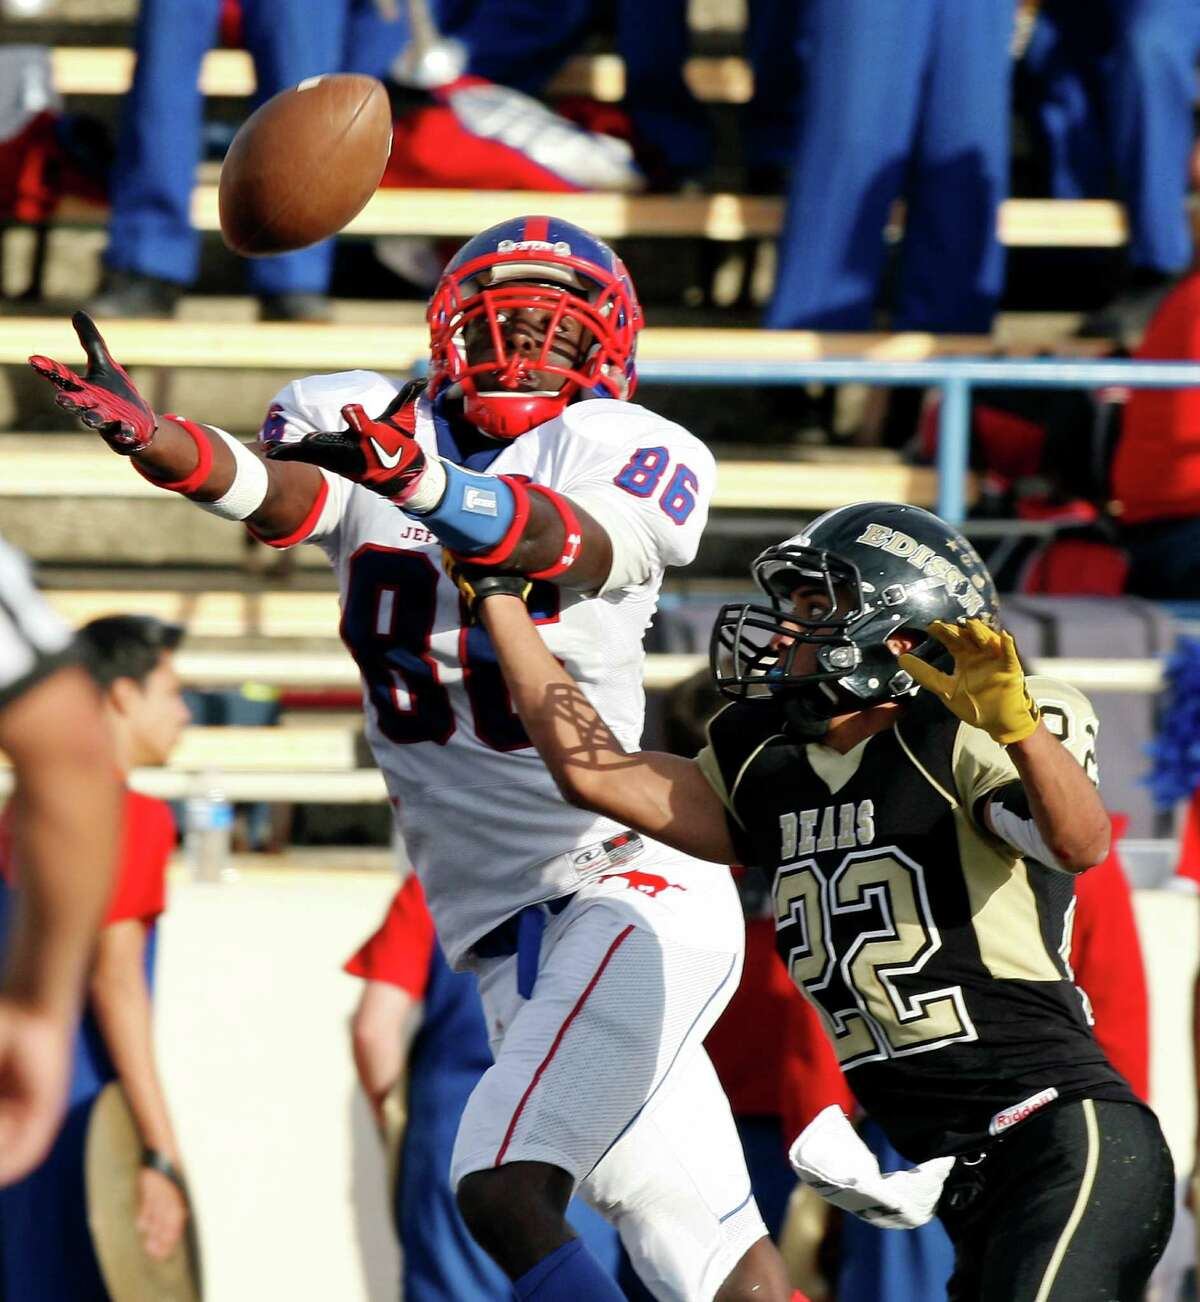 Jefferson's Maurice Hudspeth goes up for a pass as he is defended by Edison's Stephen Gomez during second half action of the Tommy Bowl Saturday Nov. 10, 2012 at Alamo Stadium. The pass was incomplete. Jefferson won 30-13.